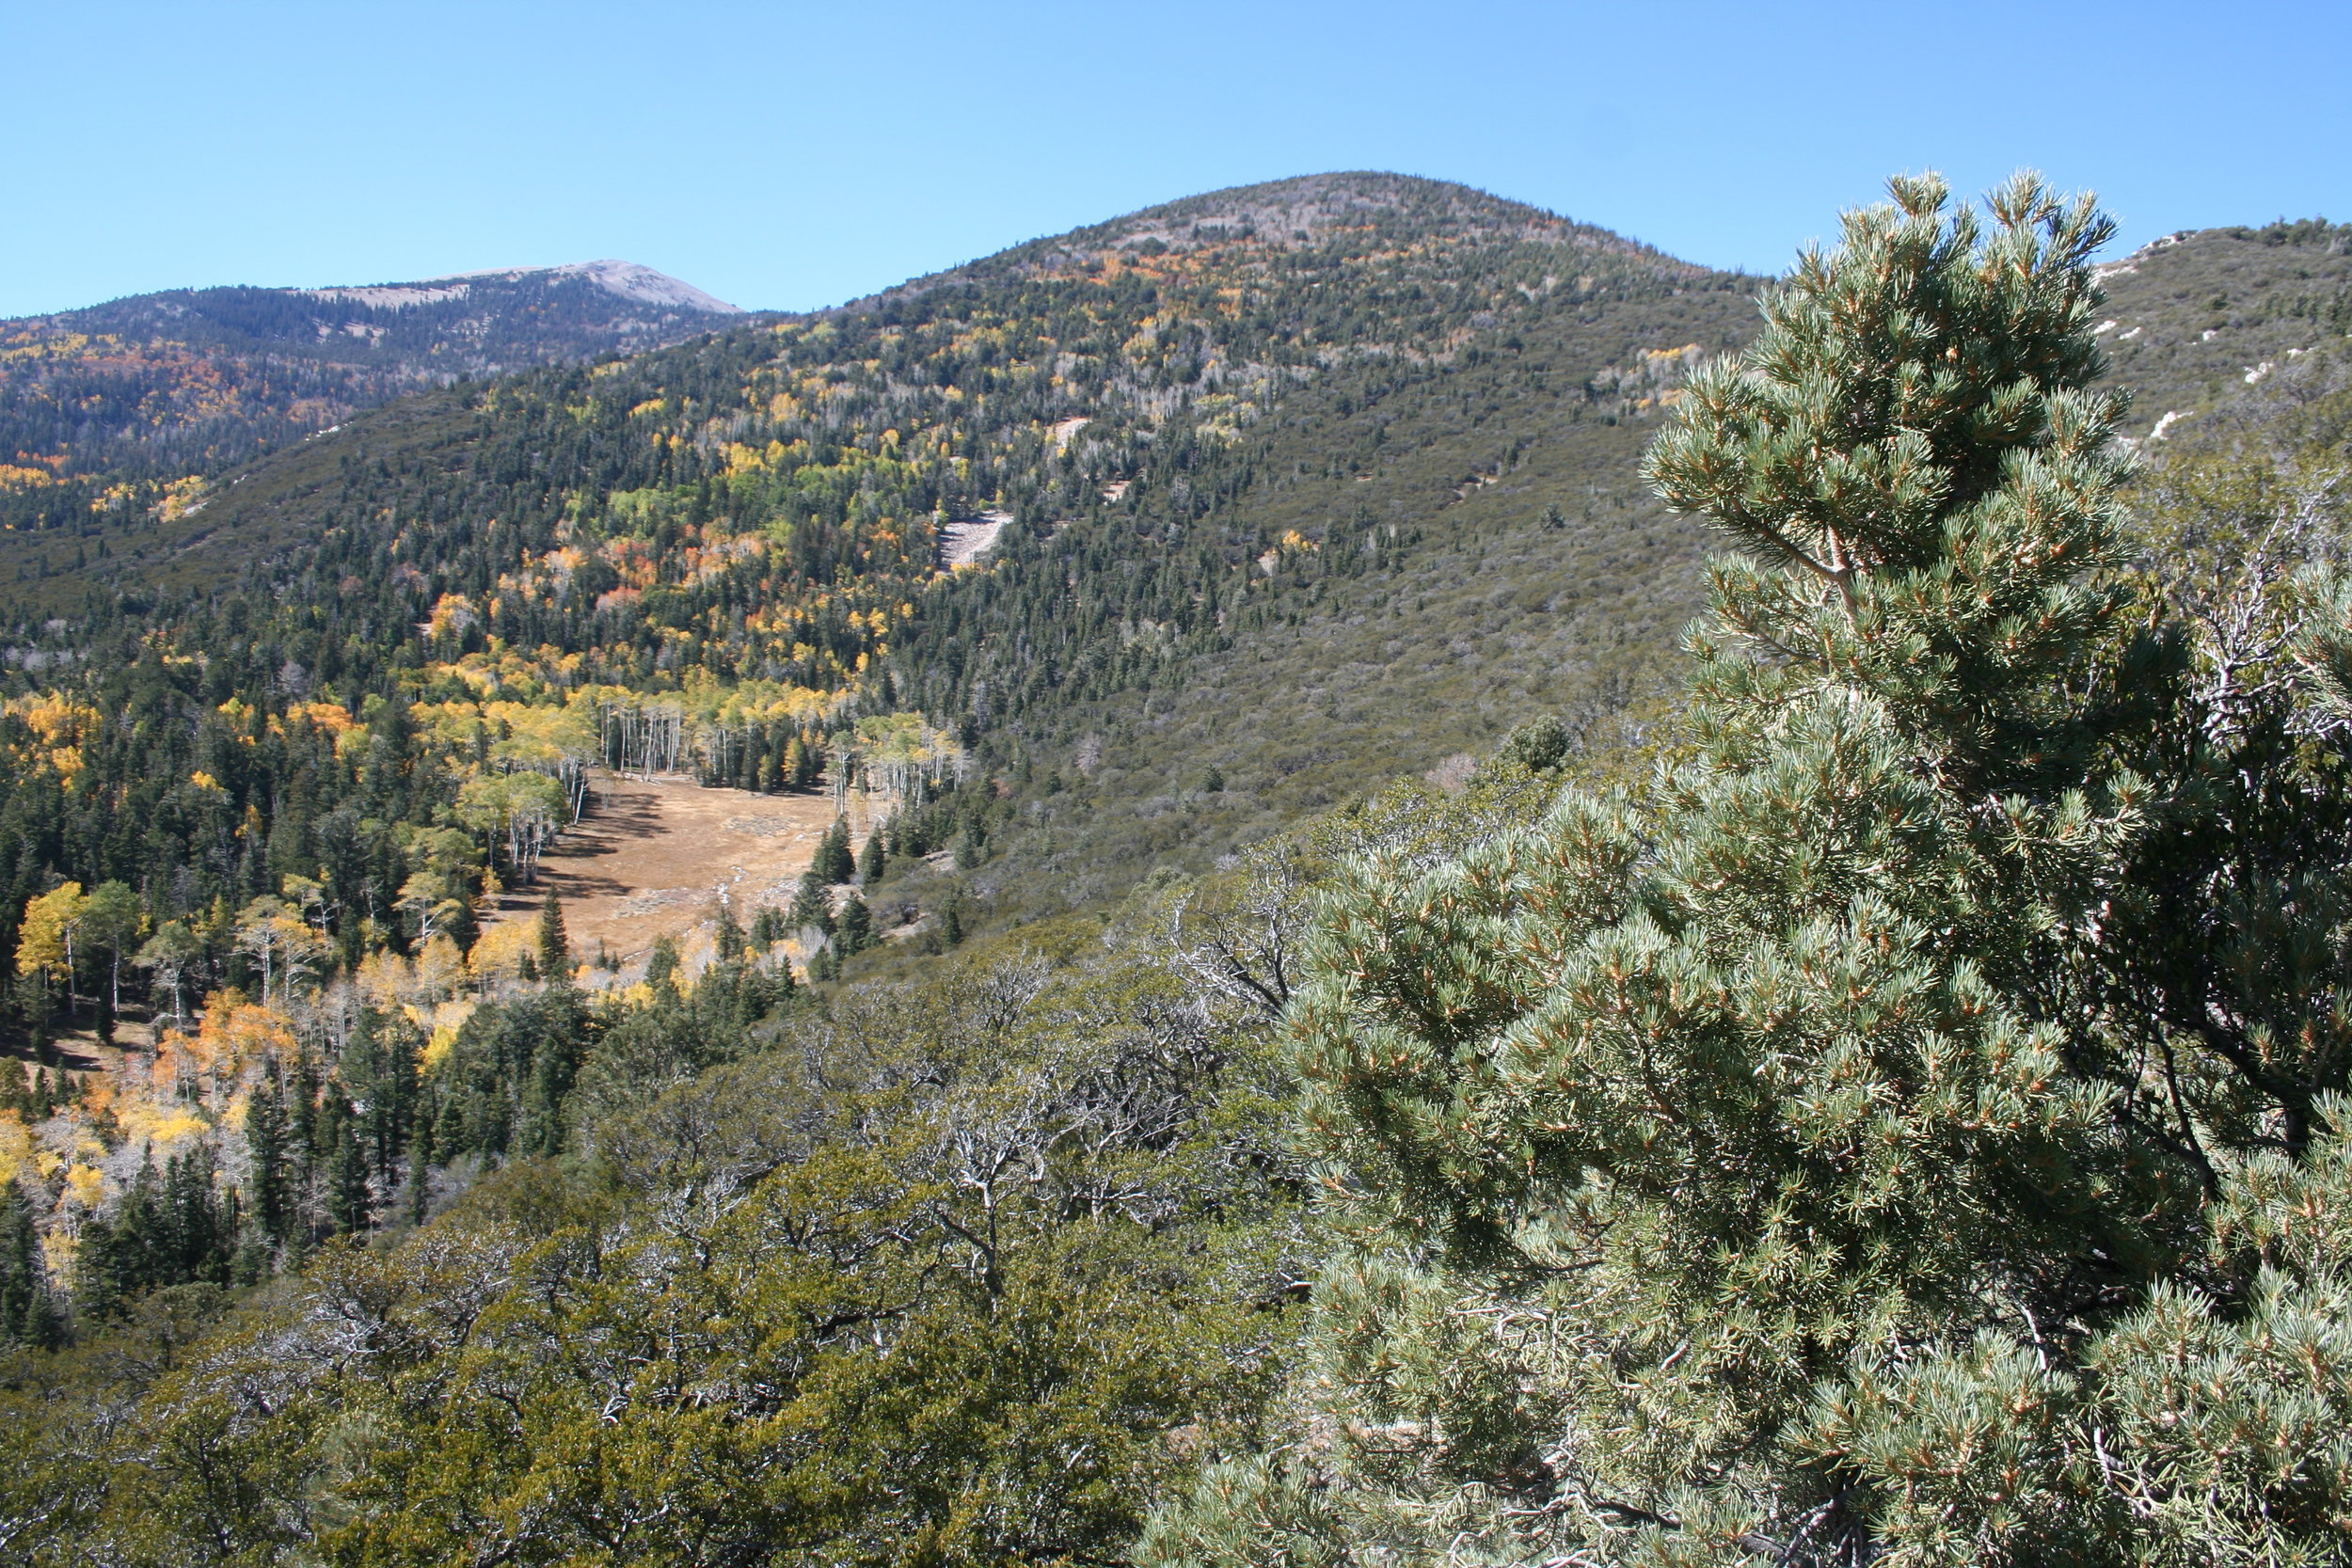 Aspens showing fall color among the conifers including Juniper, Pinon Pine and Limber Pine. Great Basin National Park, Nevada. 2016. One of my favorite places on earth!